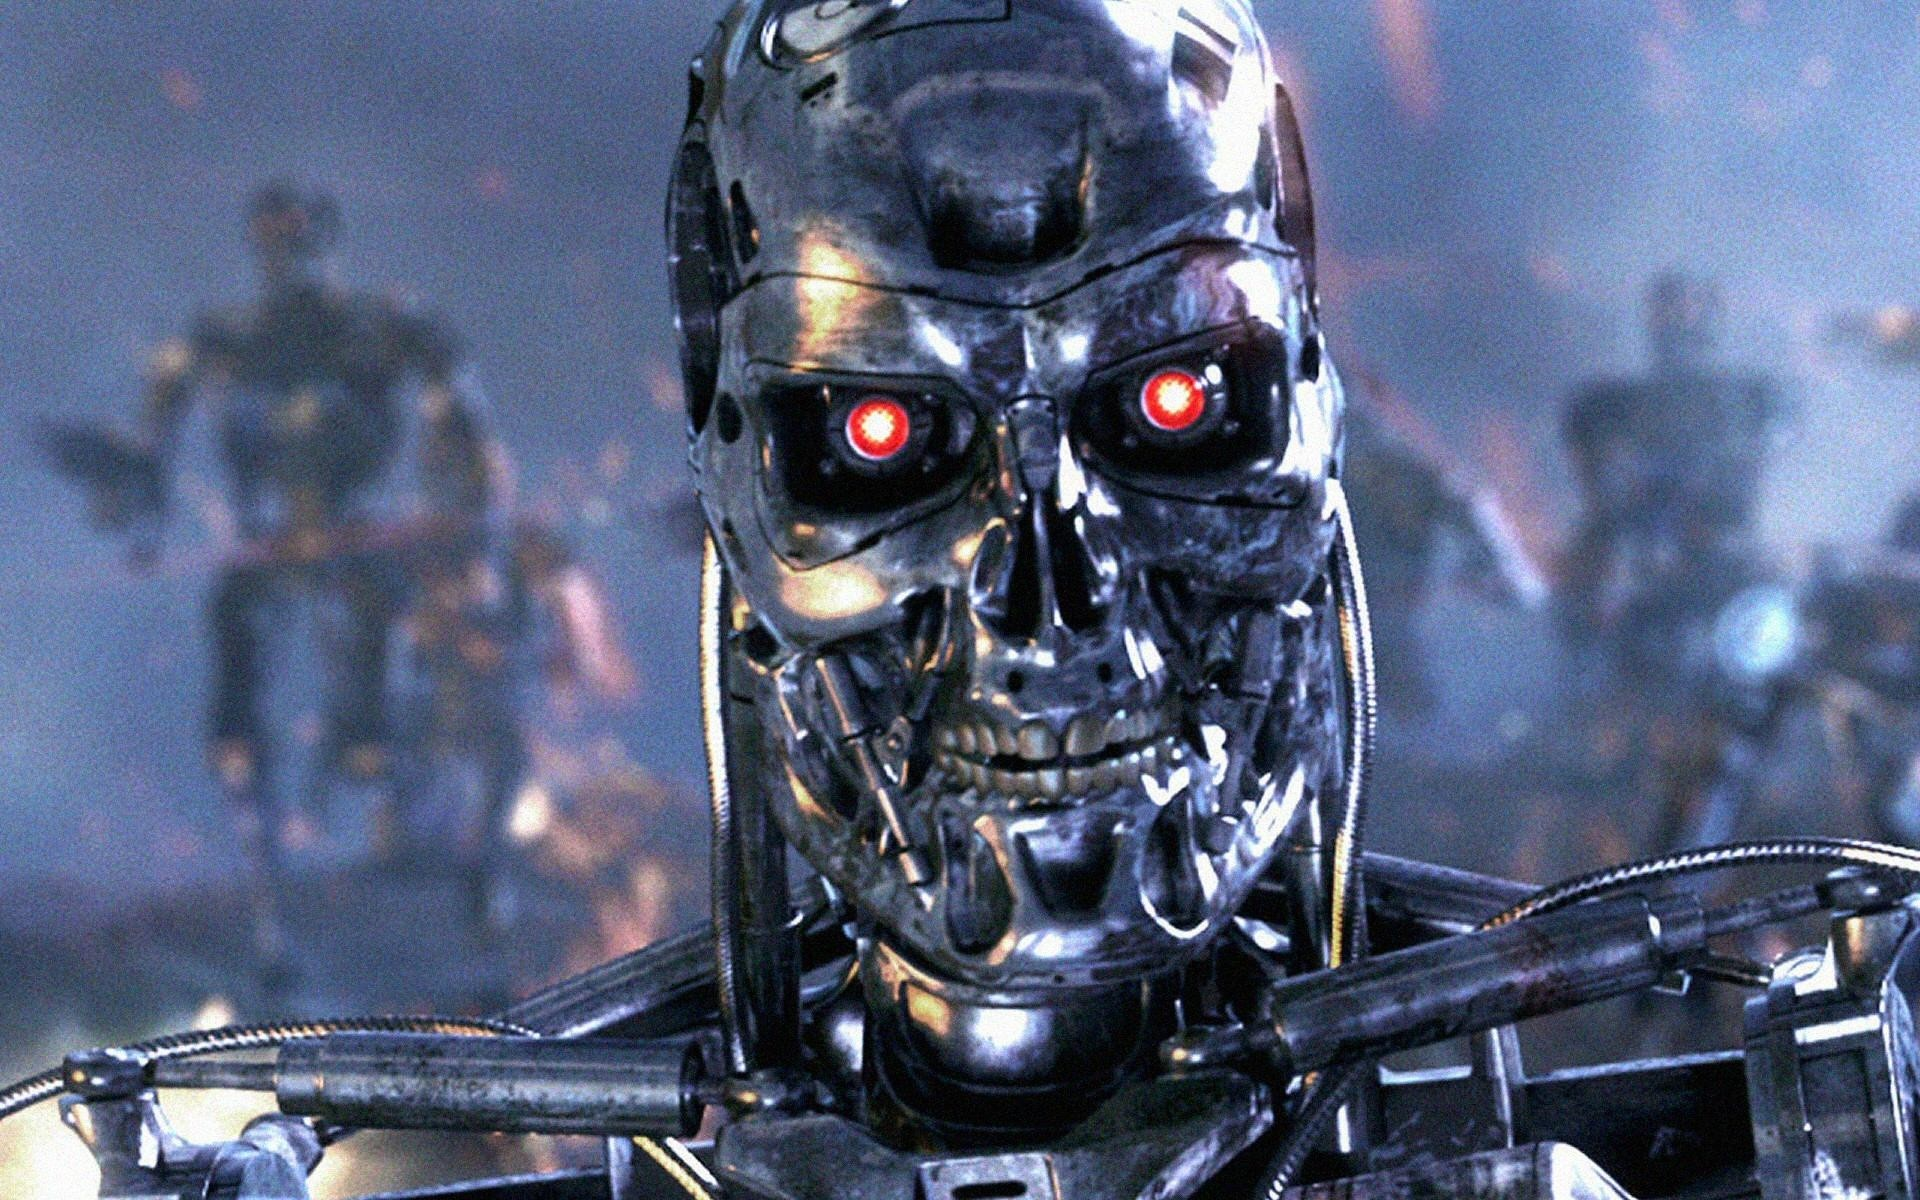 Res: 1920x1200, View all Terminator 2: Judgment Day Wallpapers. Report this Image? favorite  enlarge^  ...